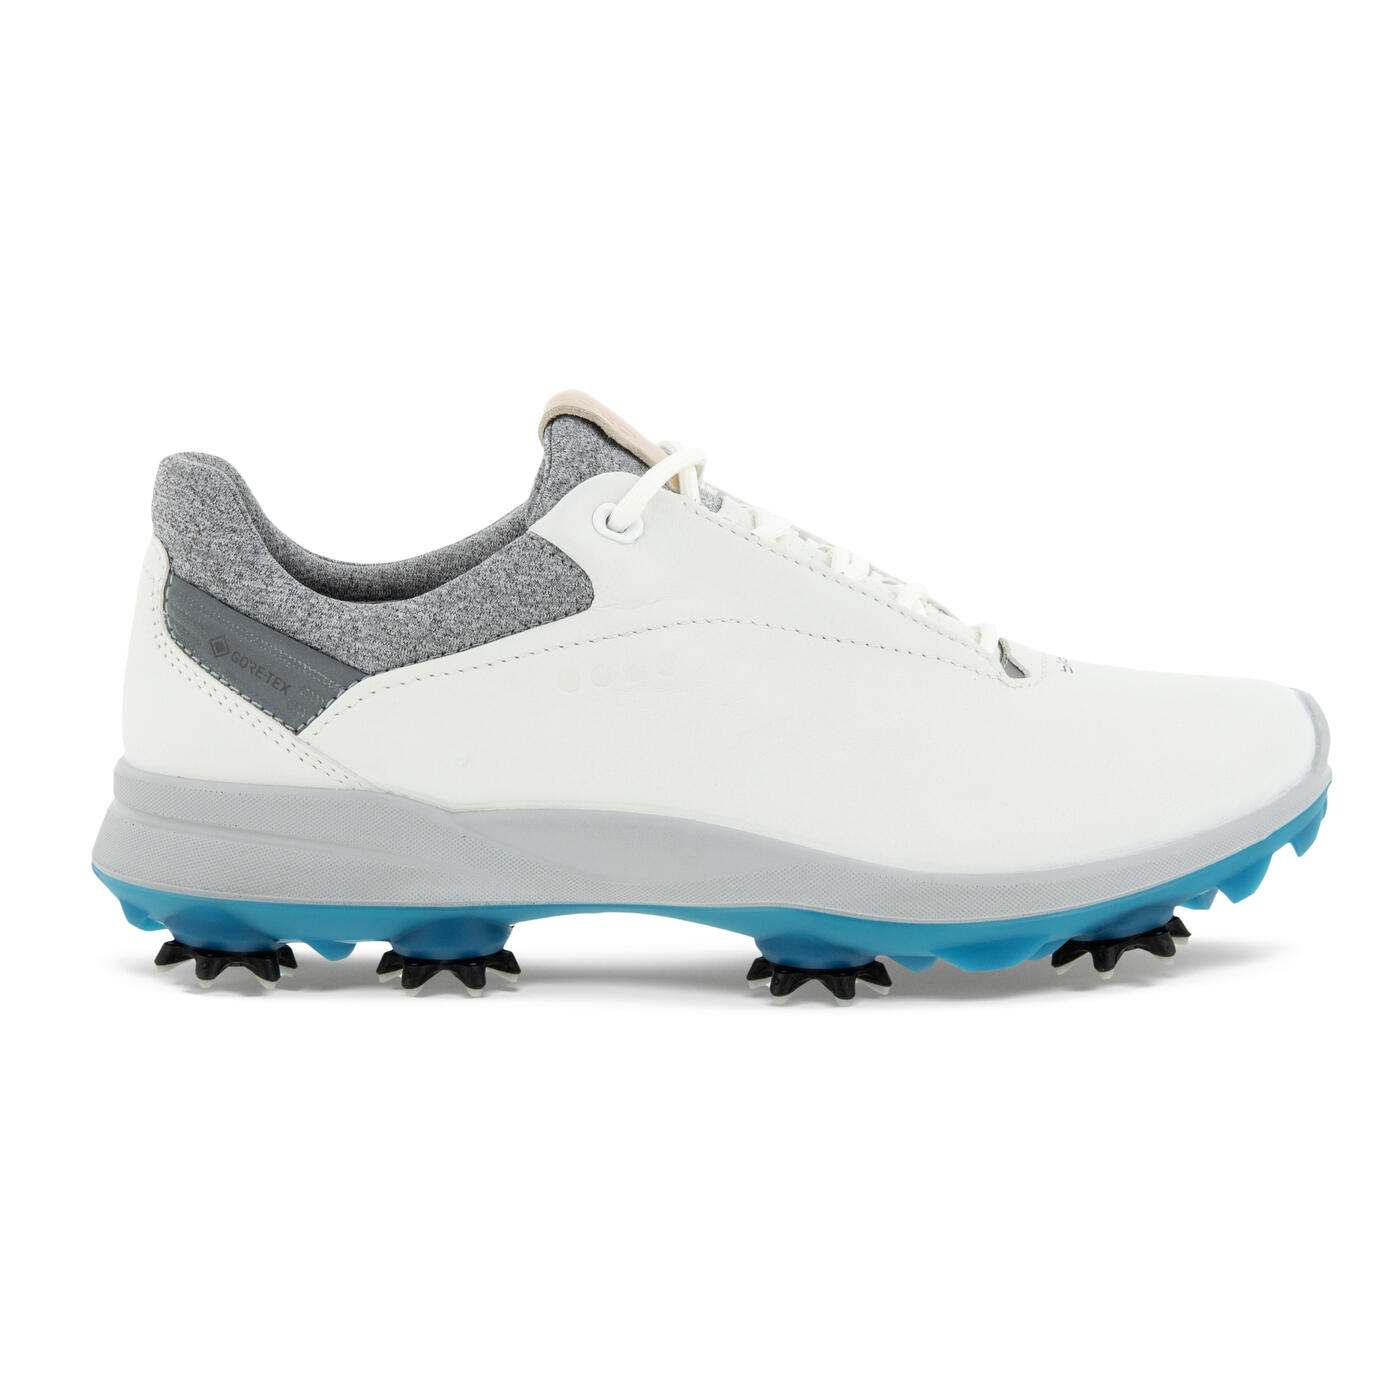 ECCO Women's Biom G3 Golf Shoe